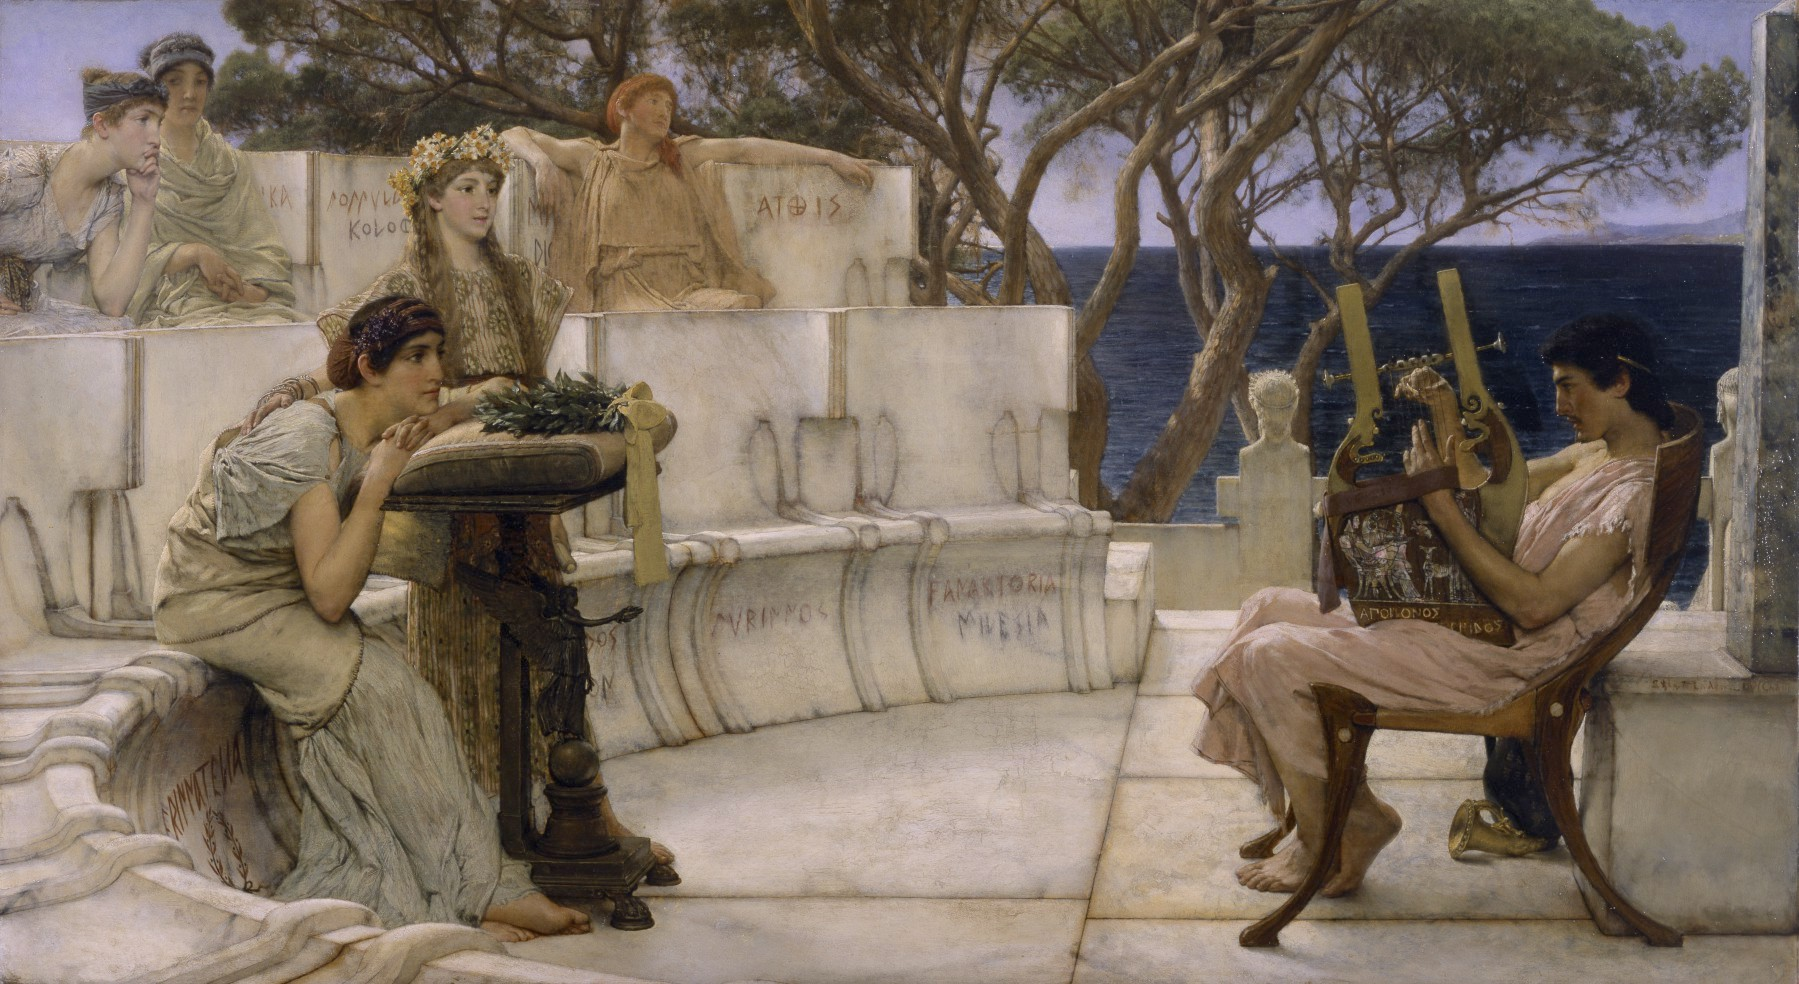 let's get inspired,shall we? - Sir Lawrence Alma-Tadema's Sappho and Alcaeus, courtesy of The Walters Museum.